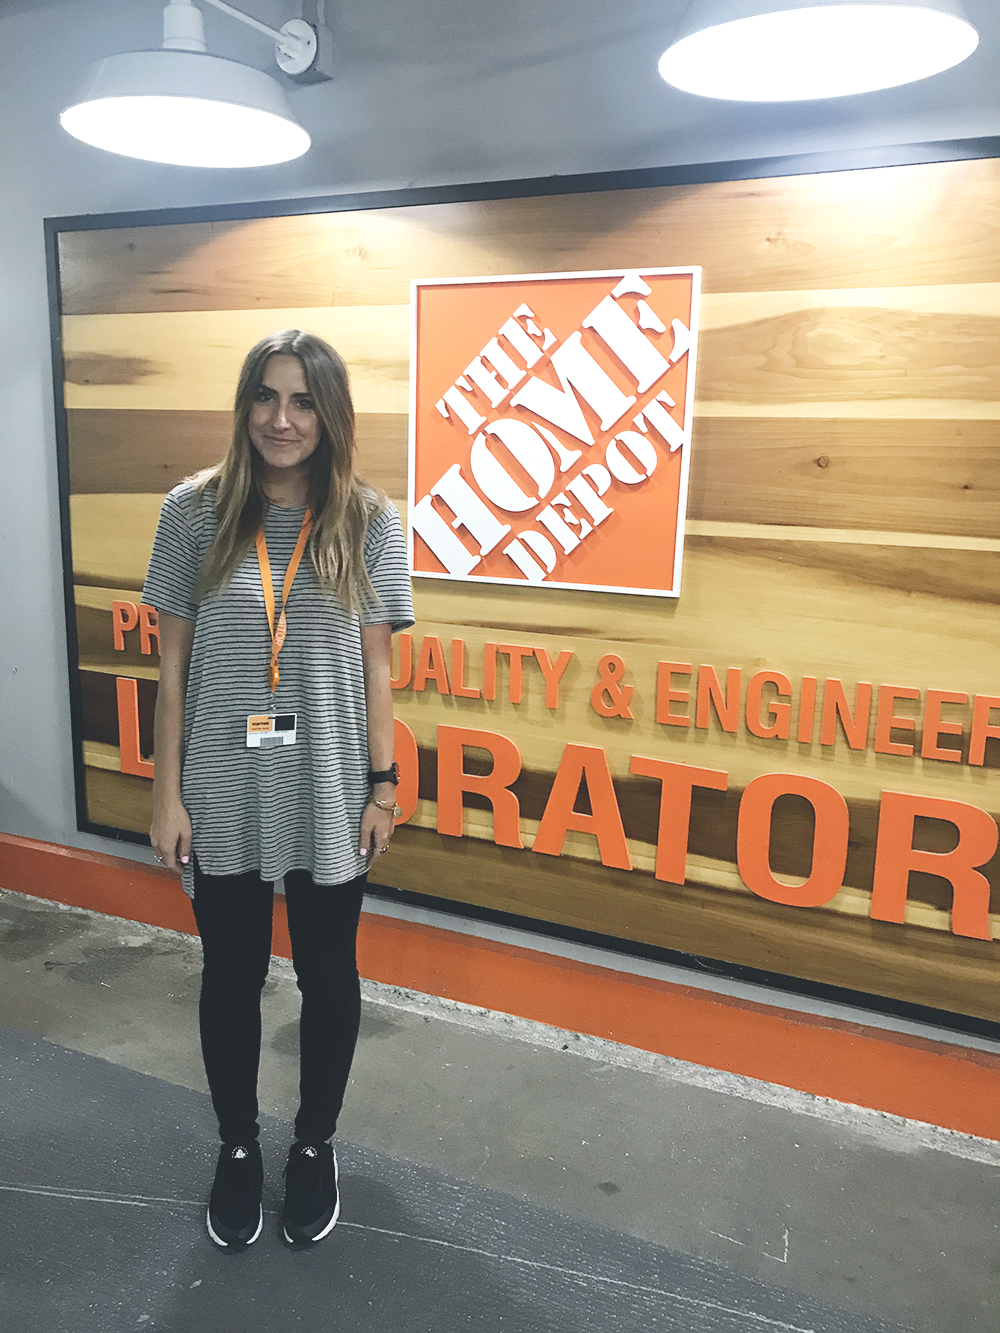 The Home Depot tests all of their in-house brands extensively in their secret basement testing lab. Very cool!